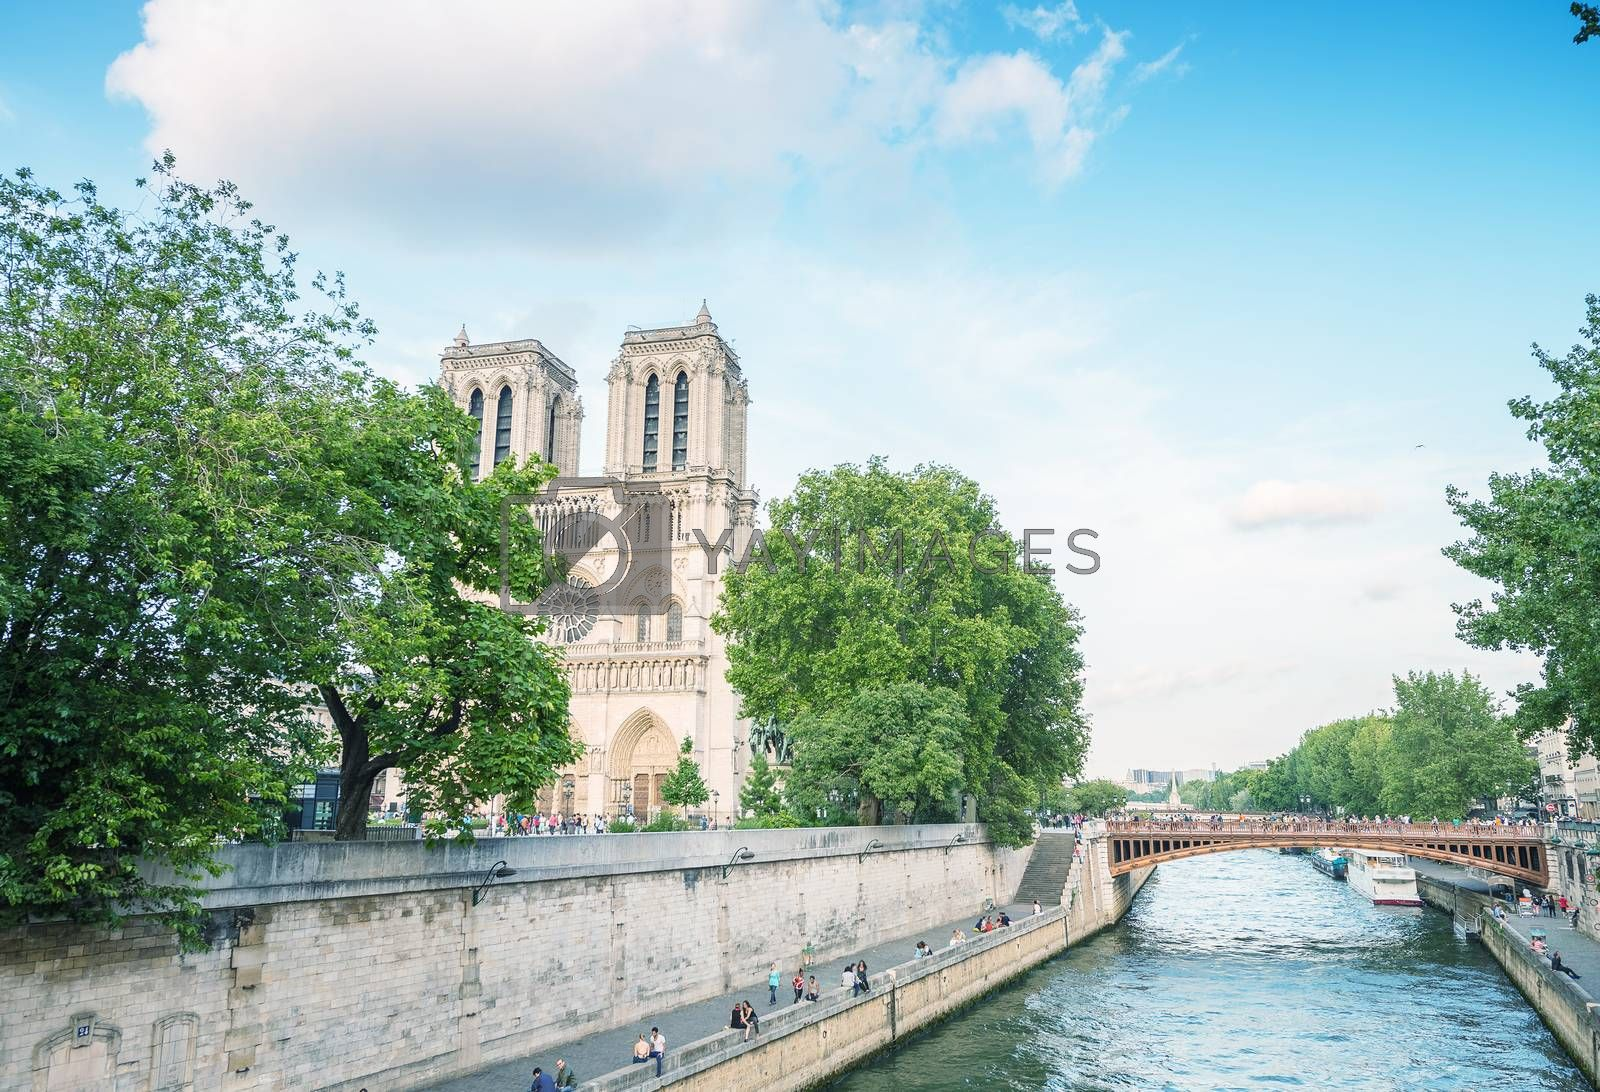 Notre Dame cathedral in Paris on a beautiful summer day.